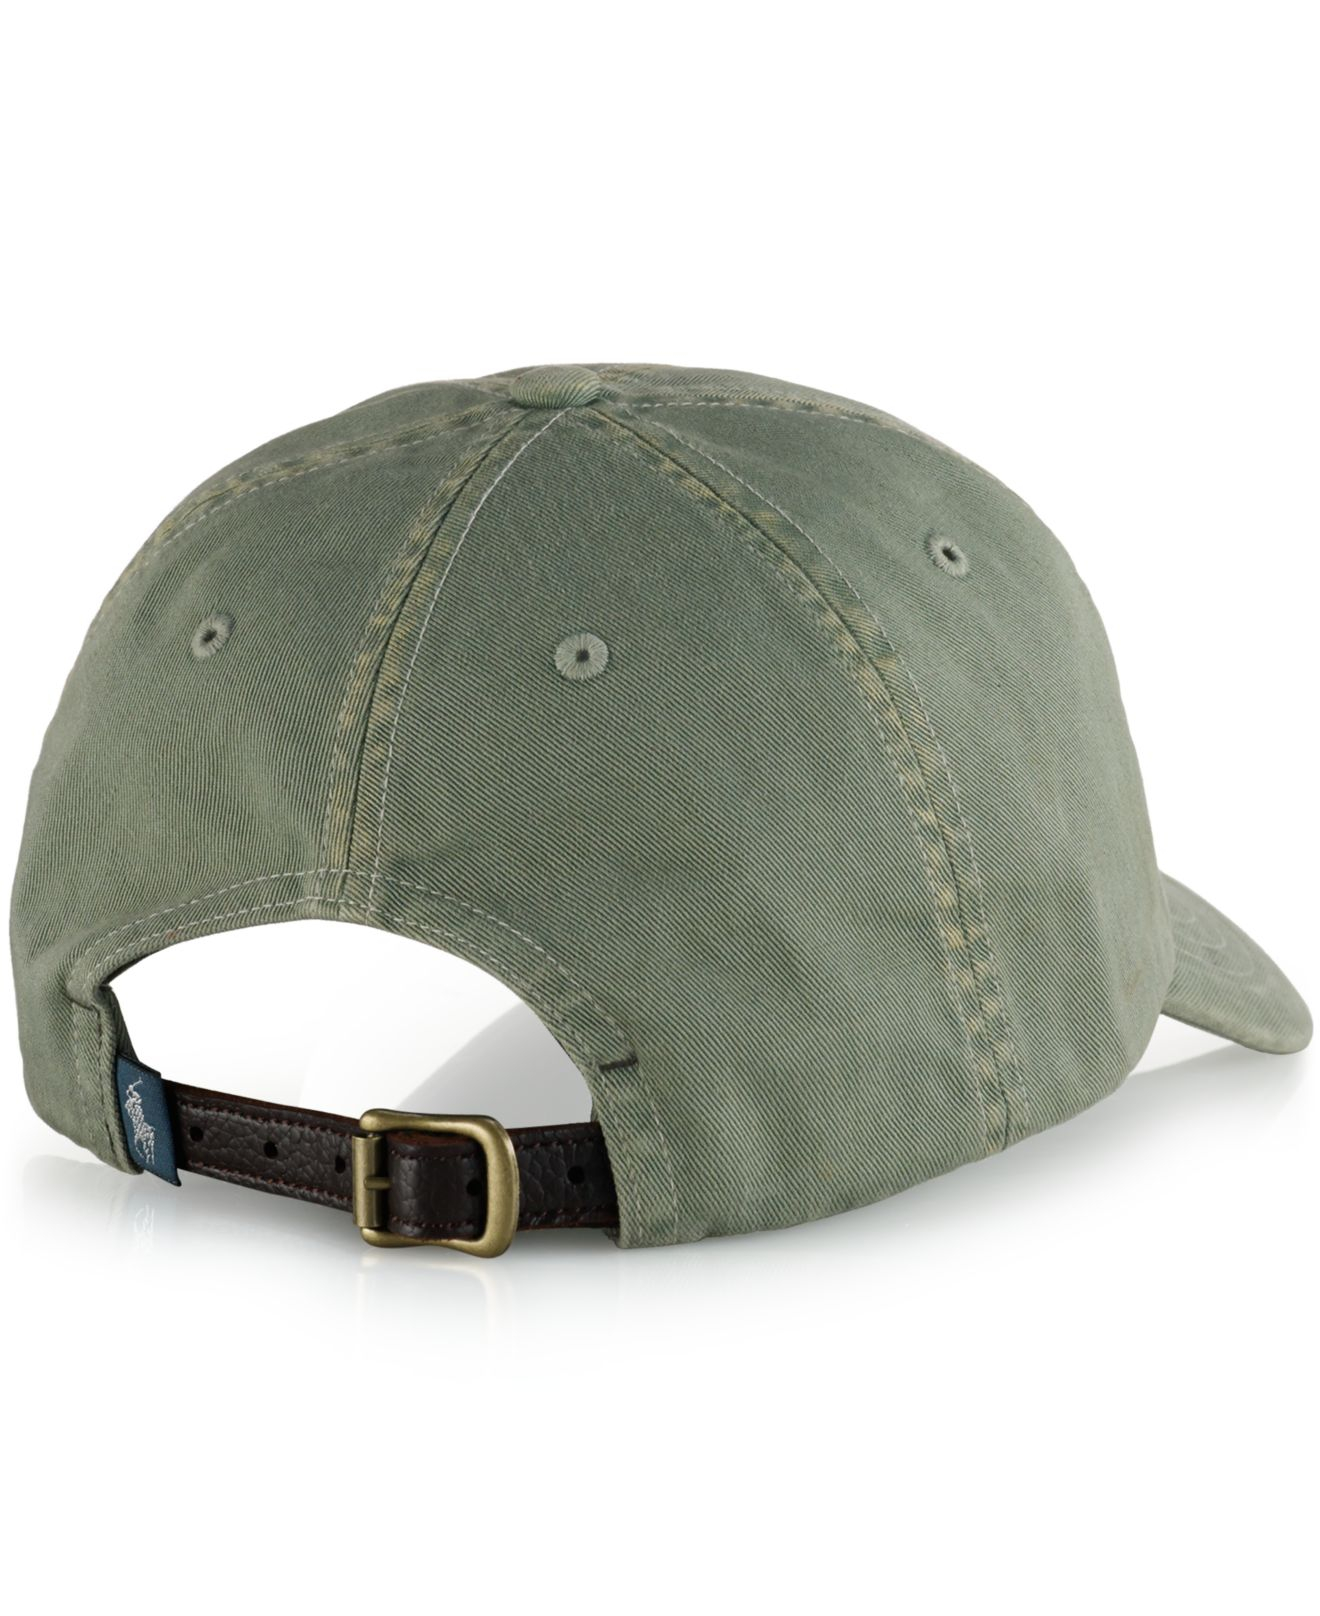 polo ralph lauren twill surf cap in green for men lyst. Black Bedroom Furniture Sets. Home Design Ideas